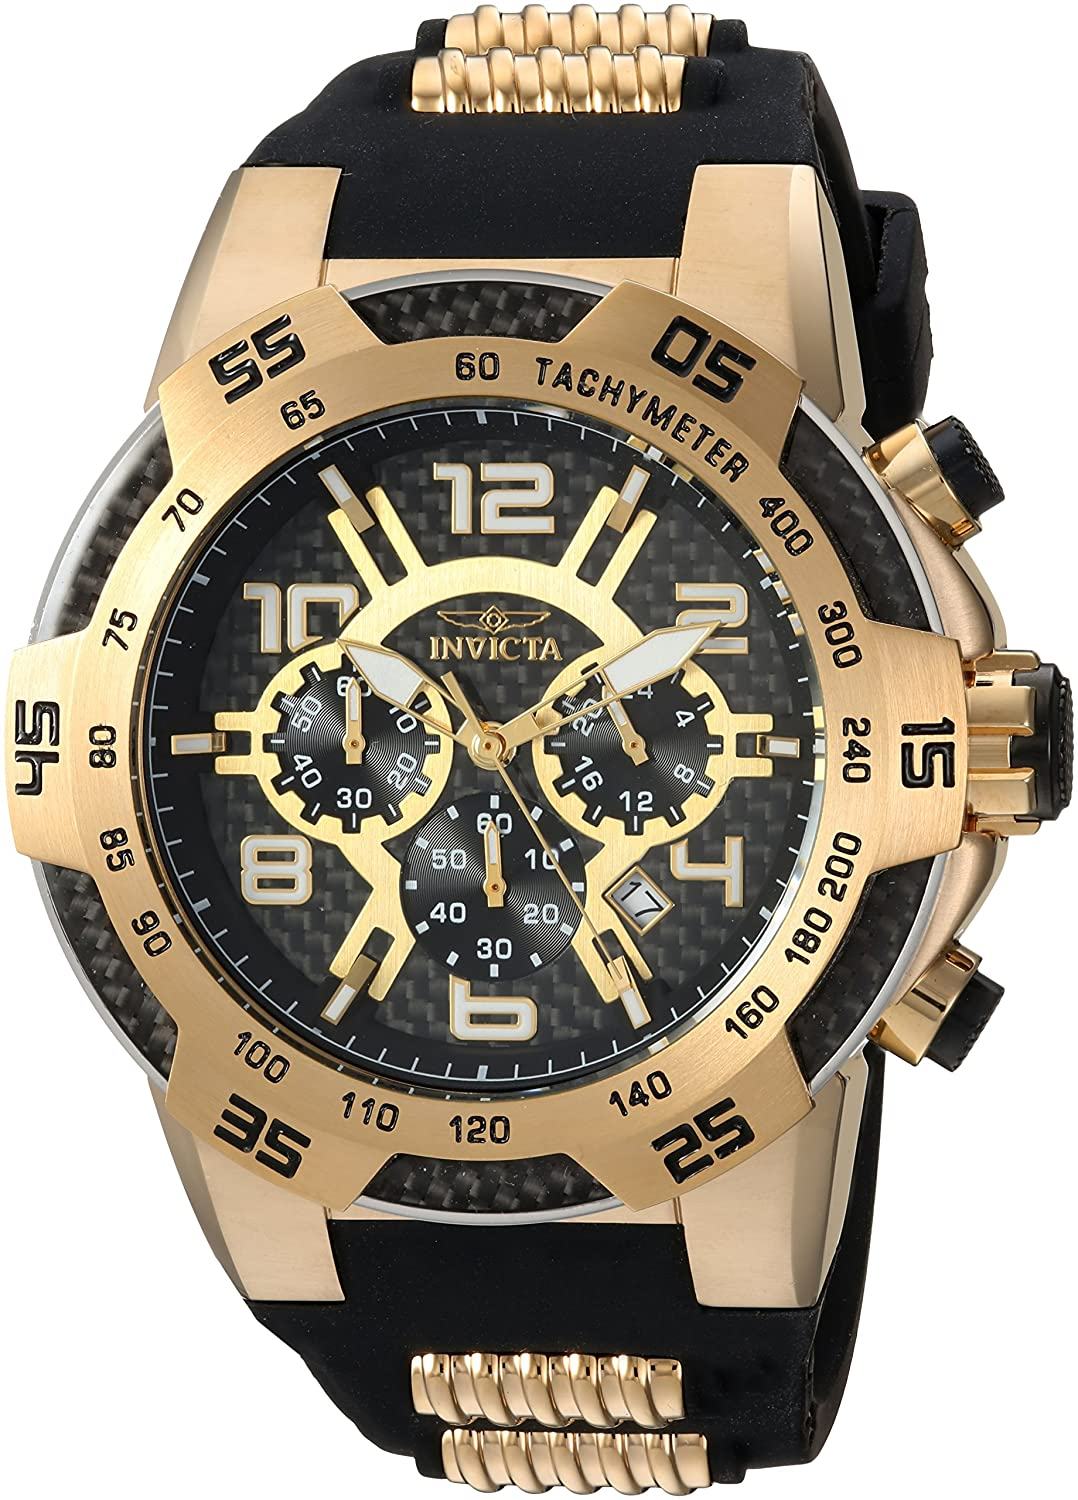 Invicta Men s Speedway Stainless Steel Quartz Watch with Silicone Strap, Two Tone, 30 Model 24233